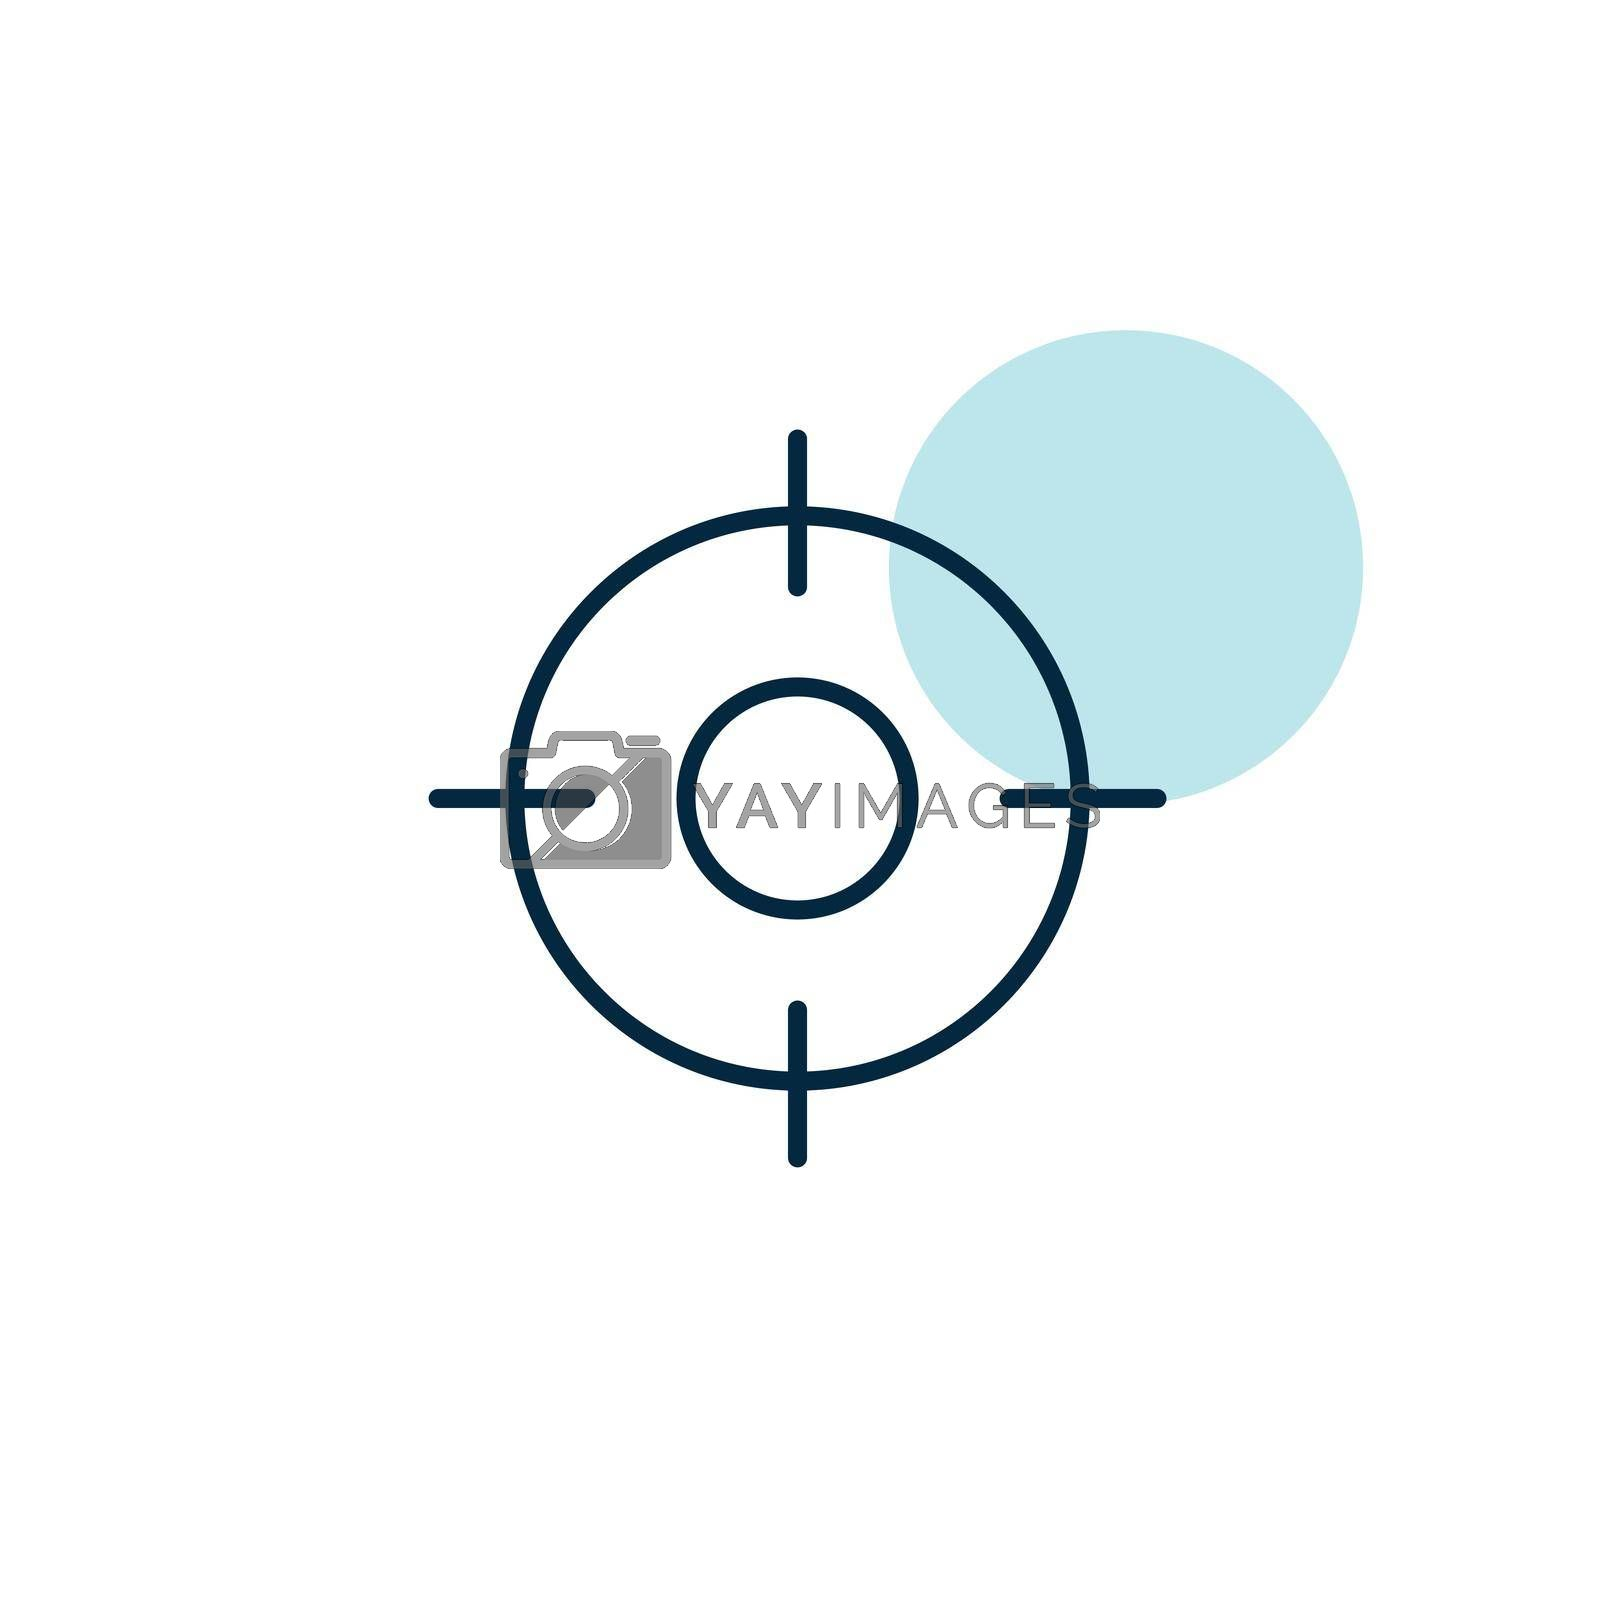 Crosshairs target destination vector icon. Navigation sign. Graph symbol for travel and tourism web site and apps design, logo, app, UI